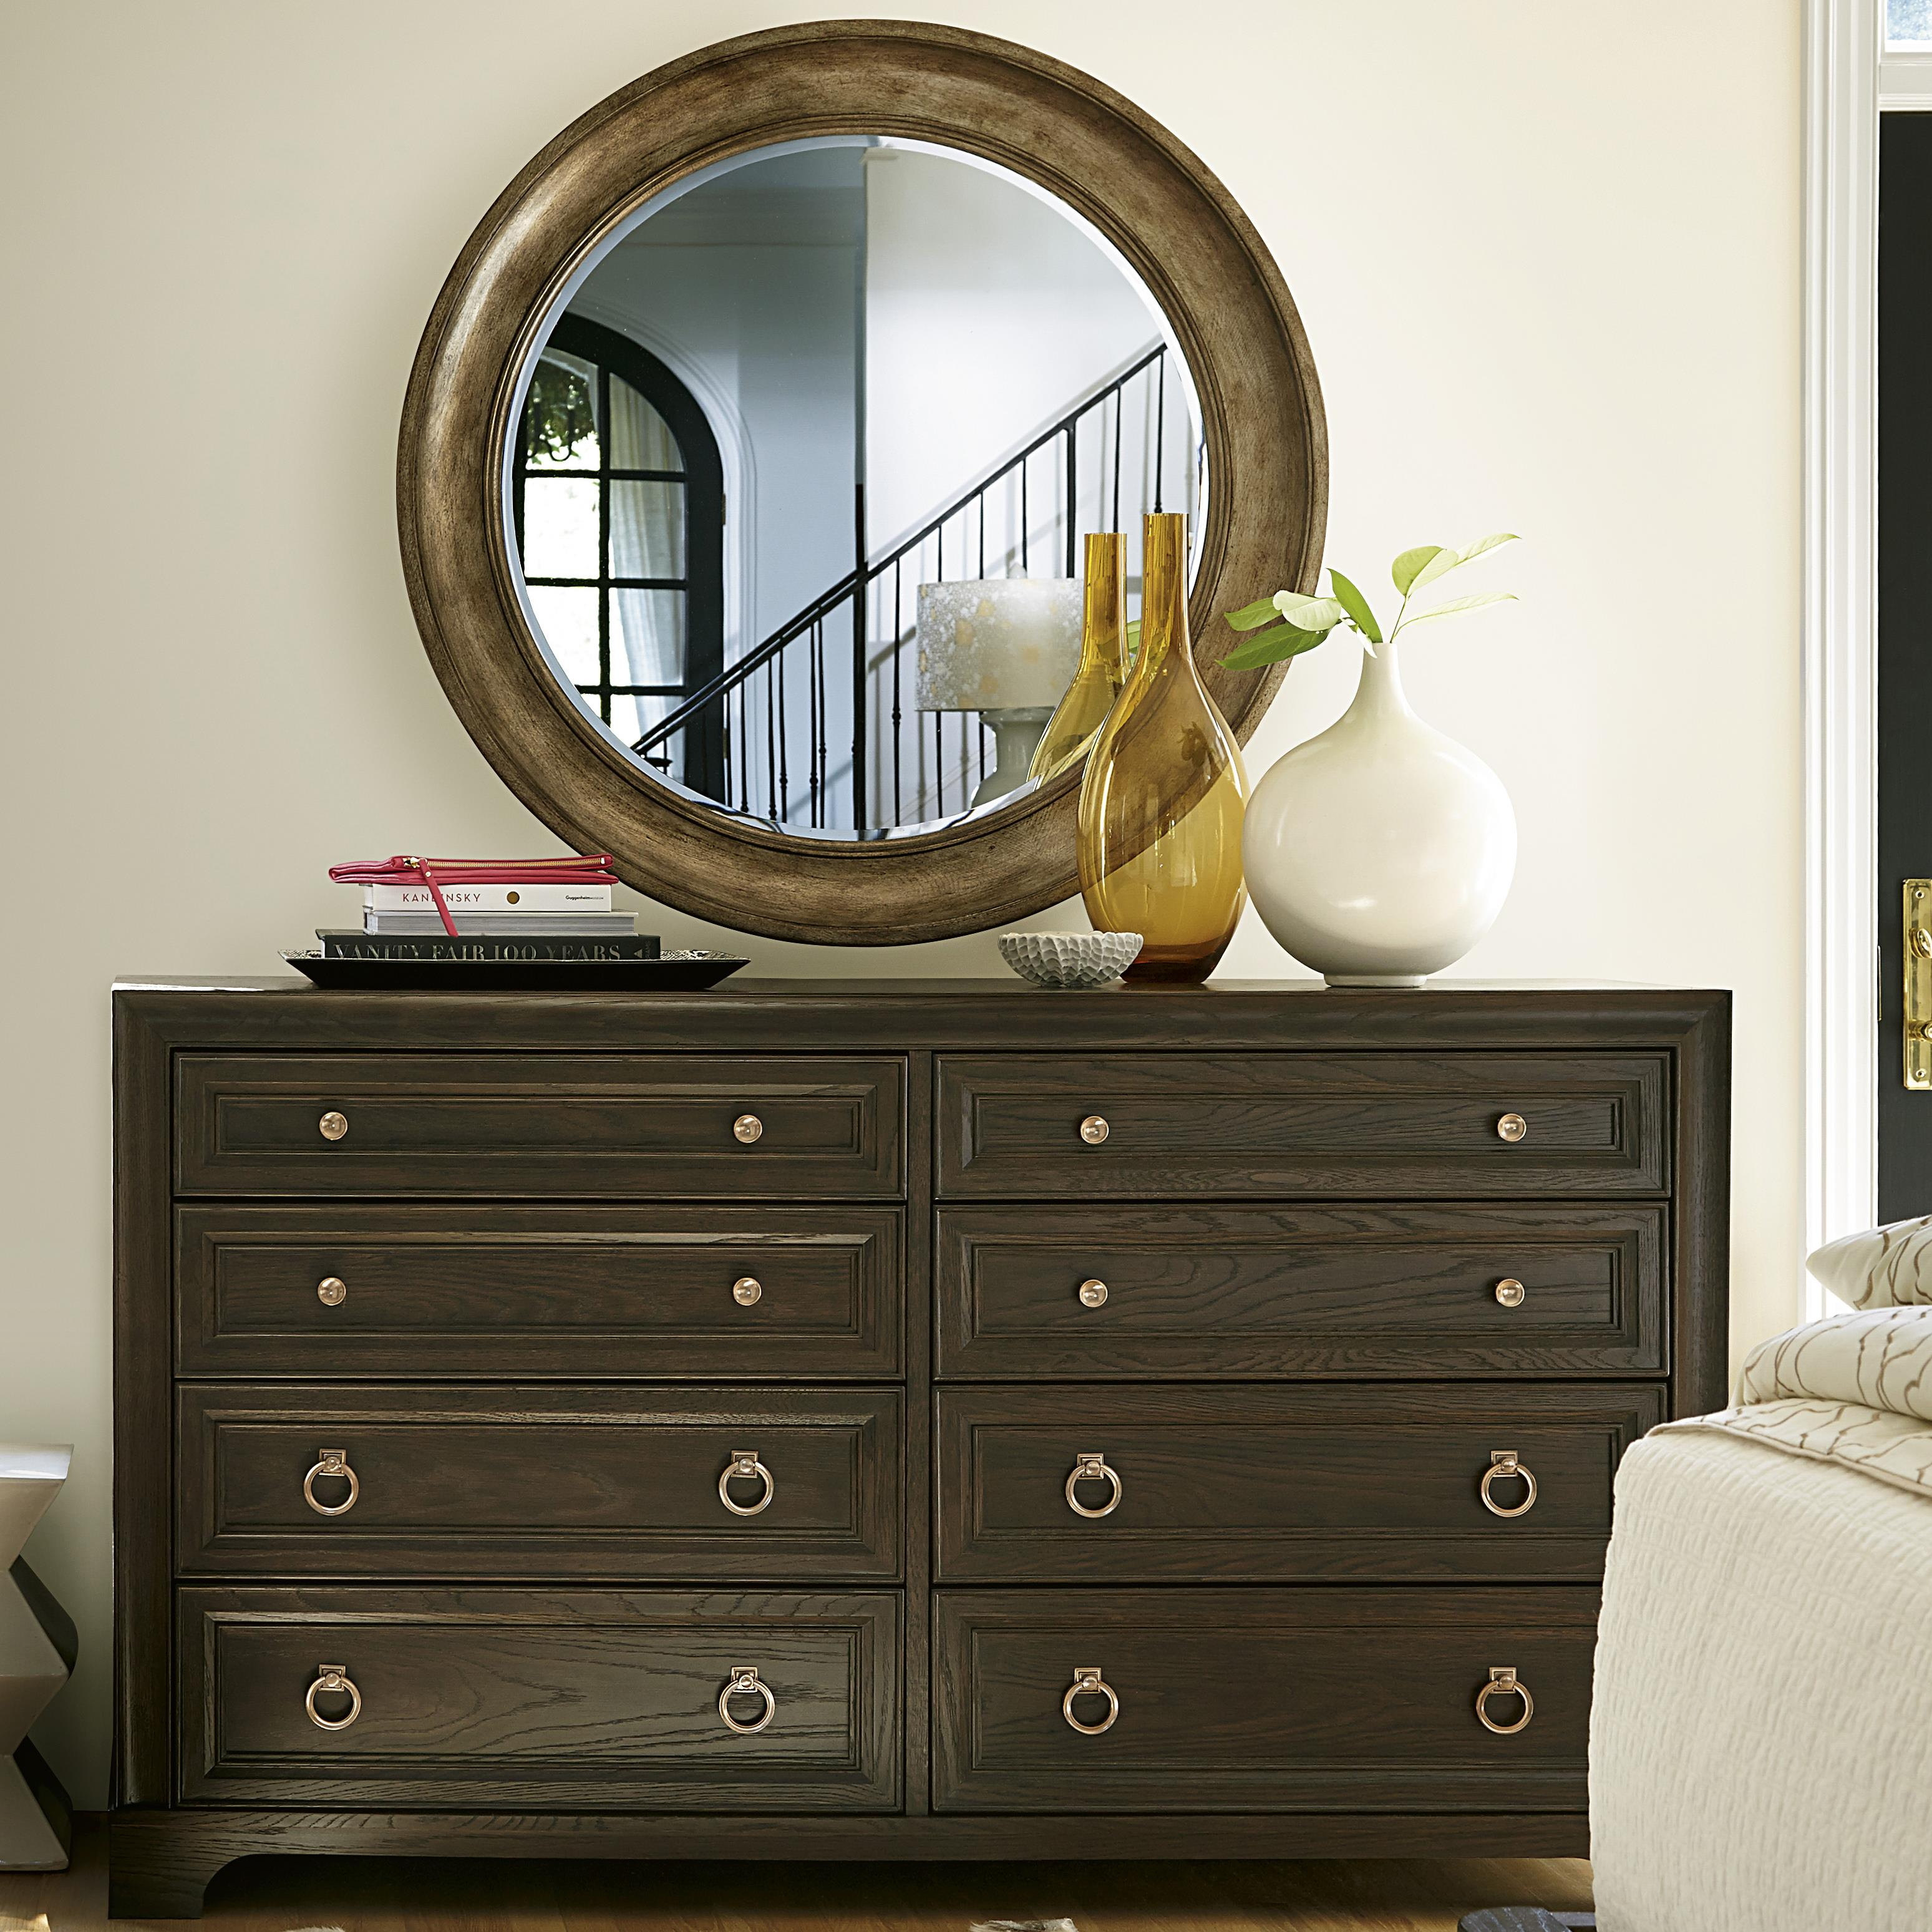 Universal California - Hollywood Hills Dresser and Mirror Set - Item Number: 475040+9M